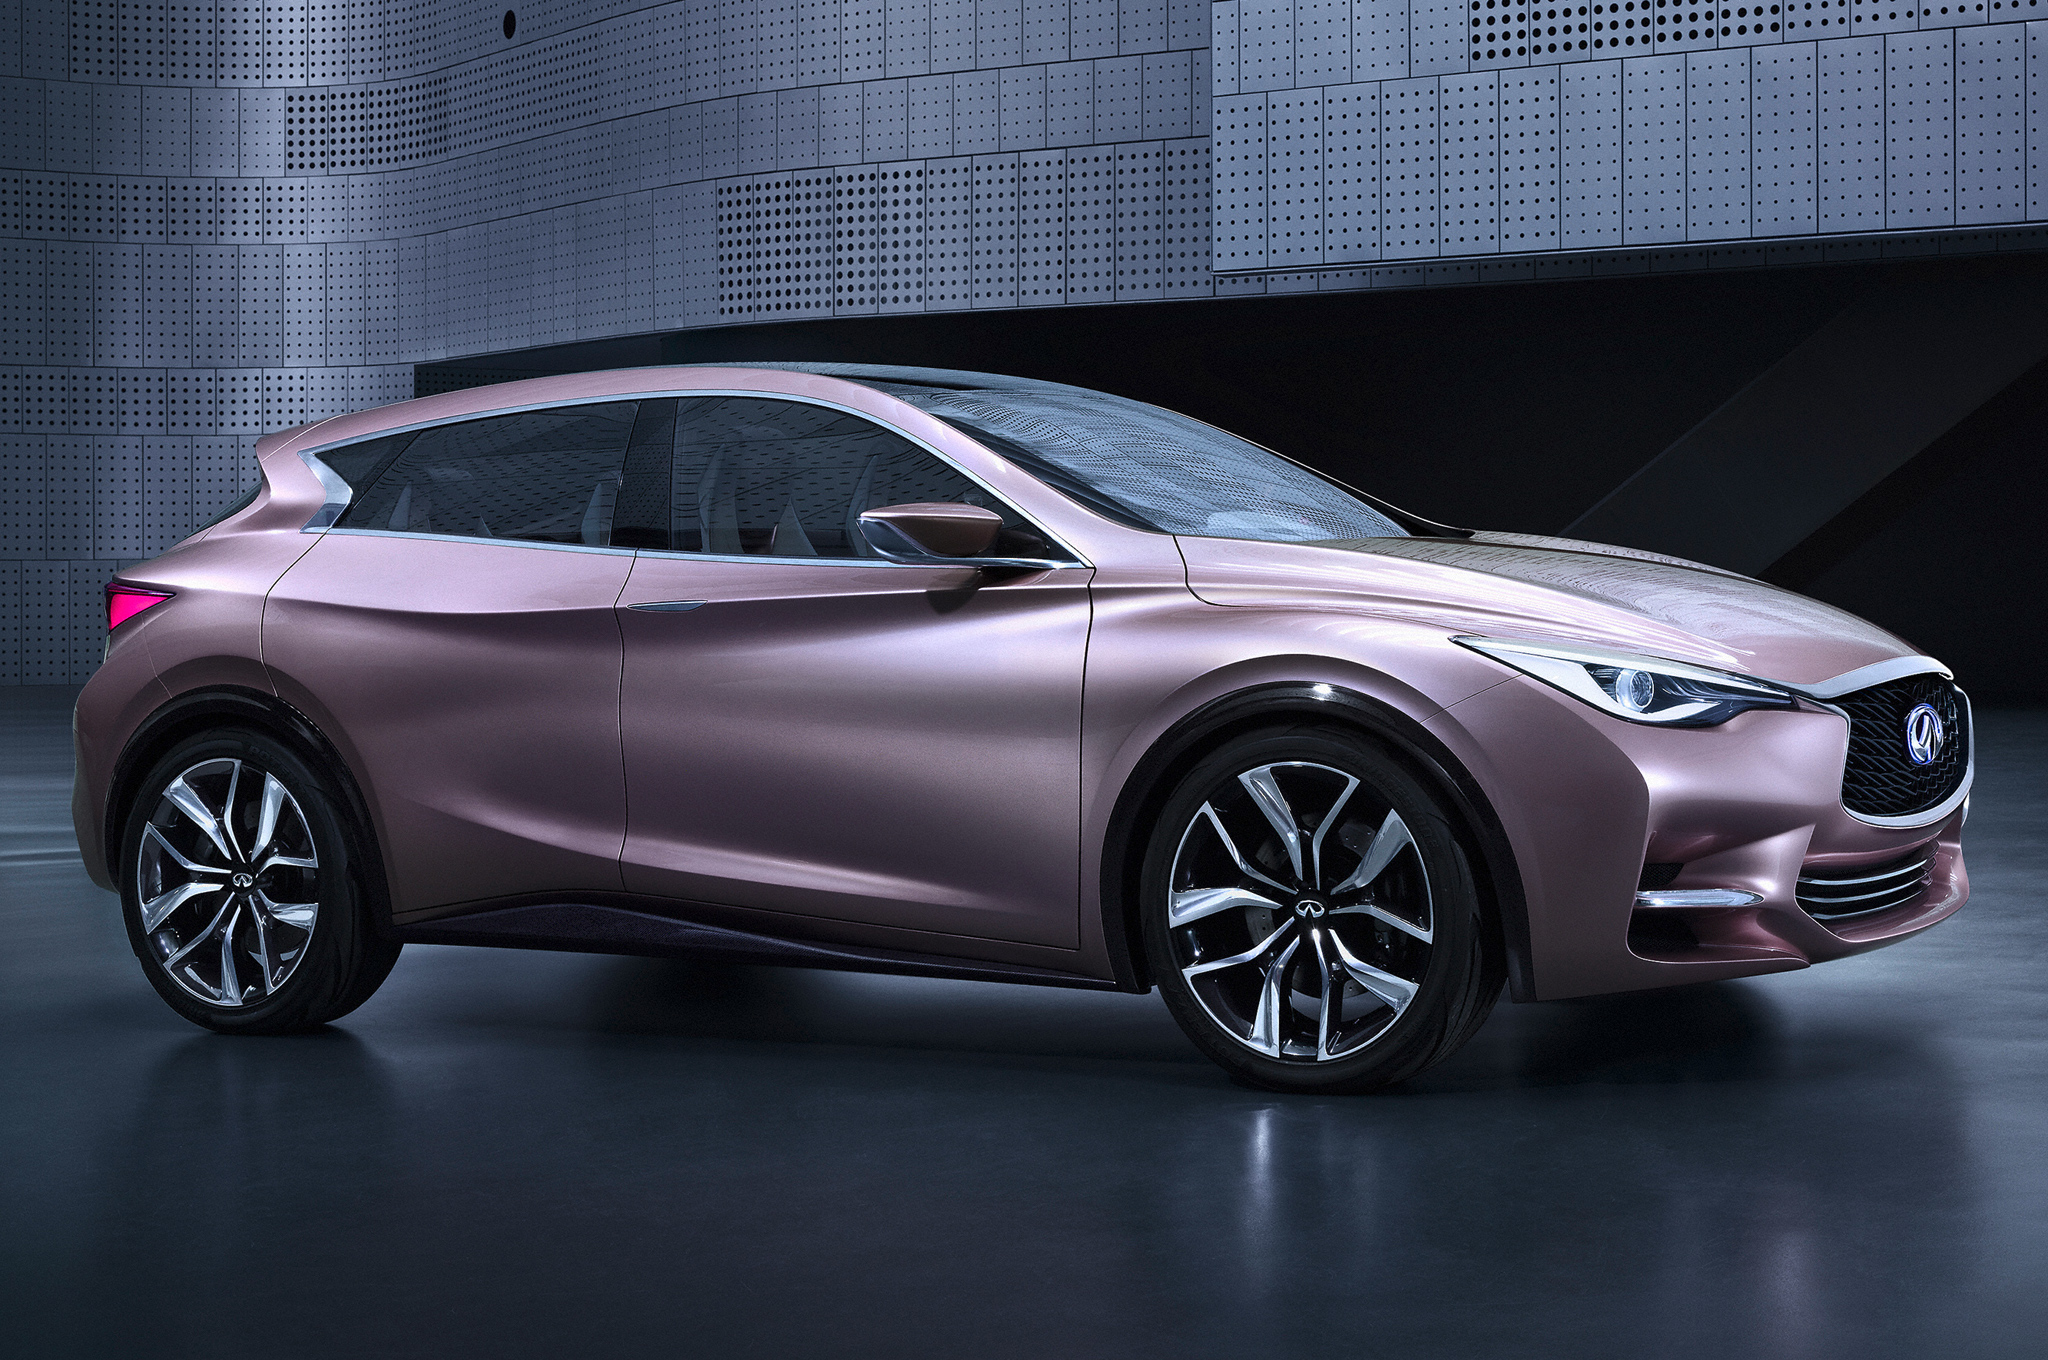 hight resolution of first infiniti q30 concept image revealed